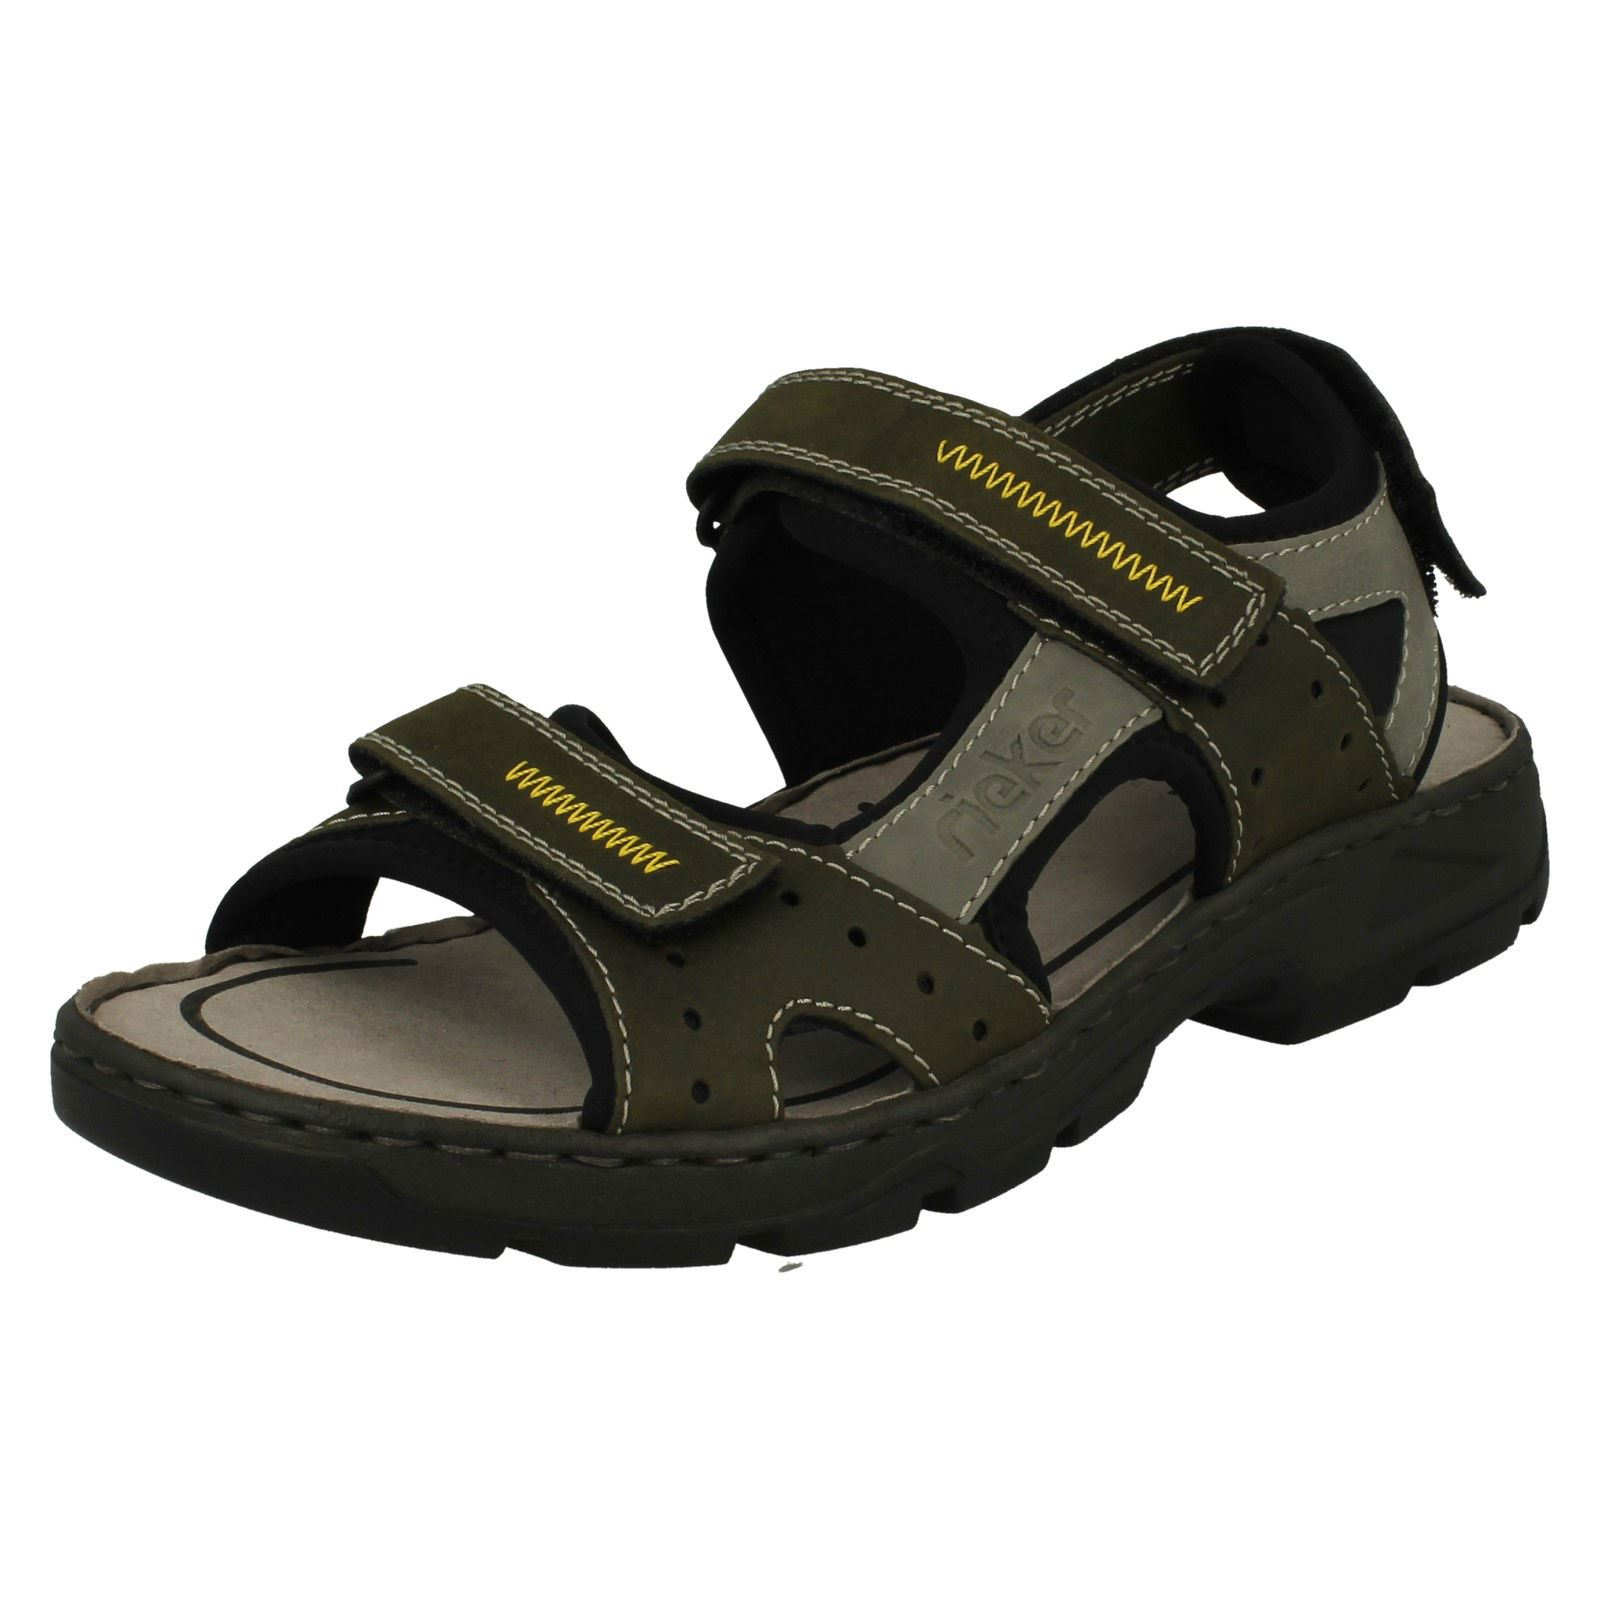 Mens Mens Mens Rieker Casual Strapped Sandals 26157 fbbd8f